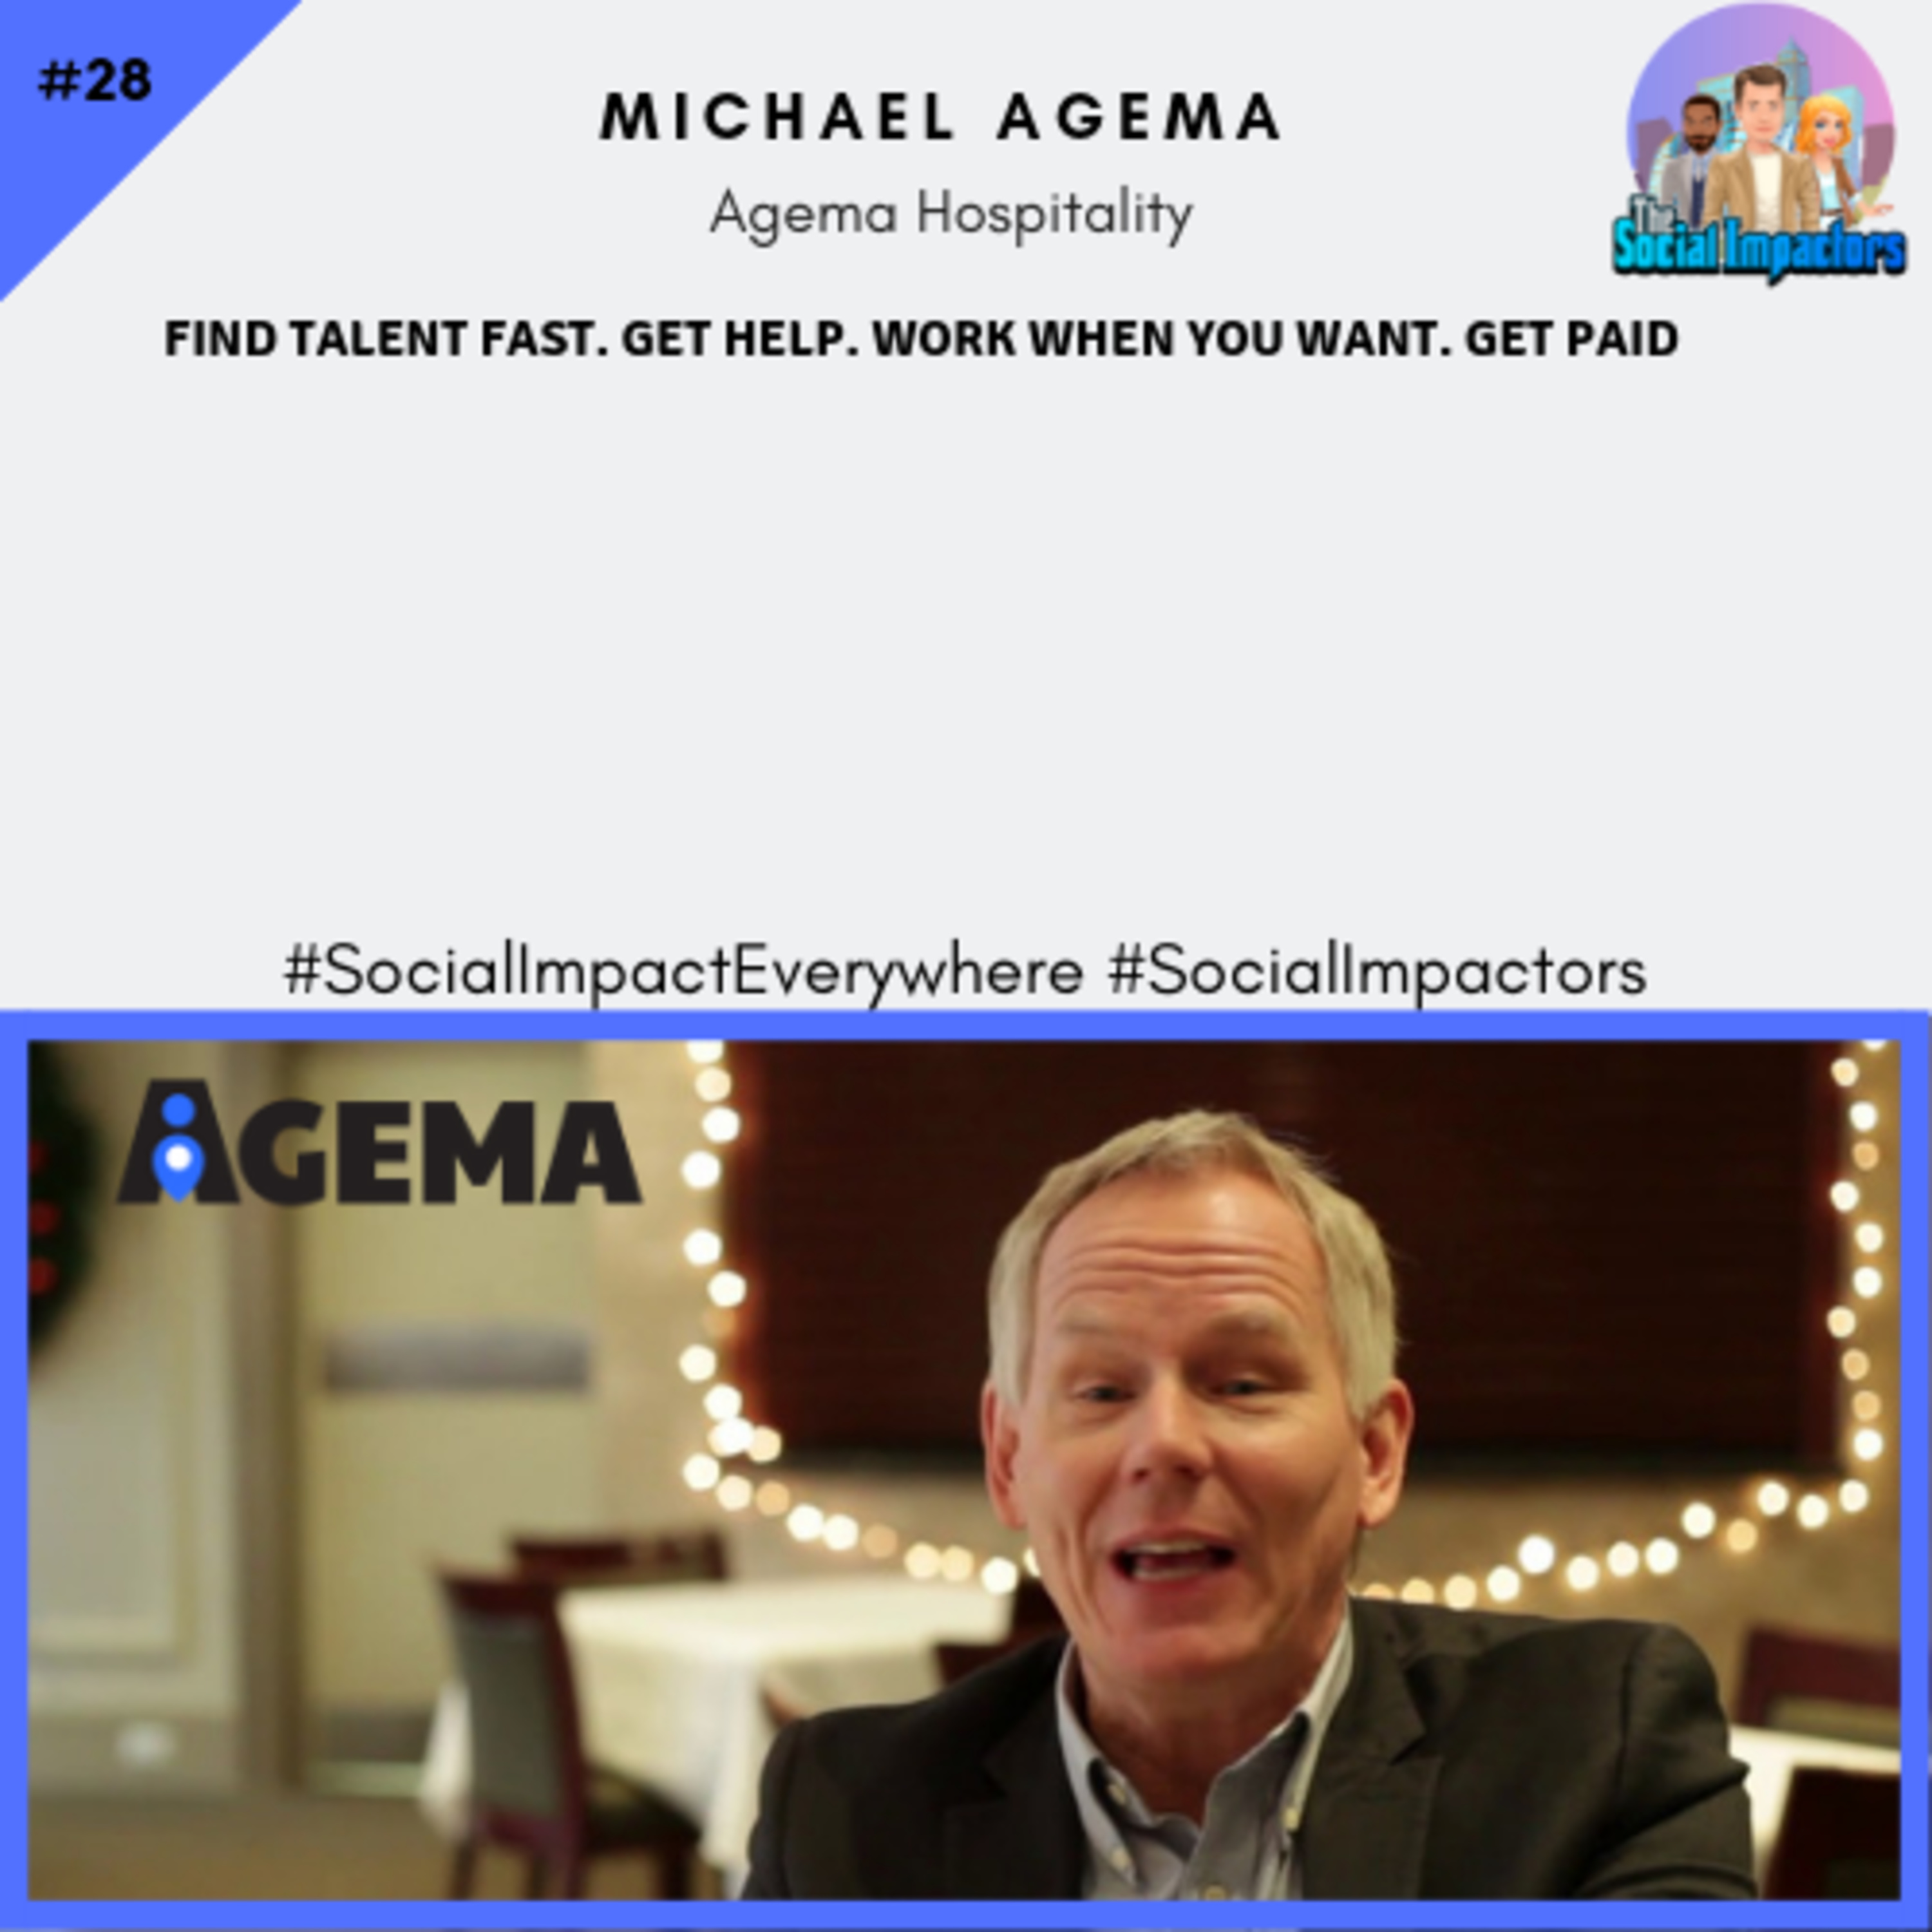 Disrupting the hospitality market, finding talent fast & working when you want (Michael Agema of Agema Hospitality)